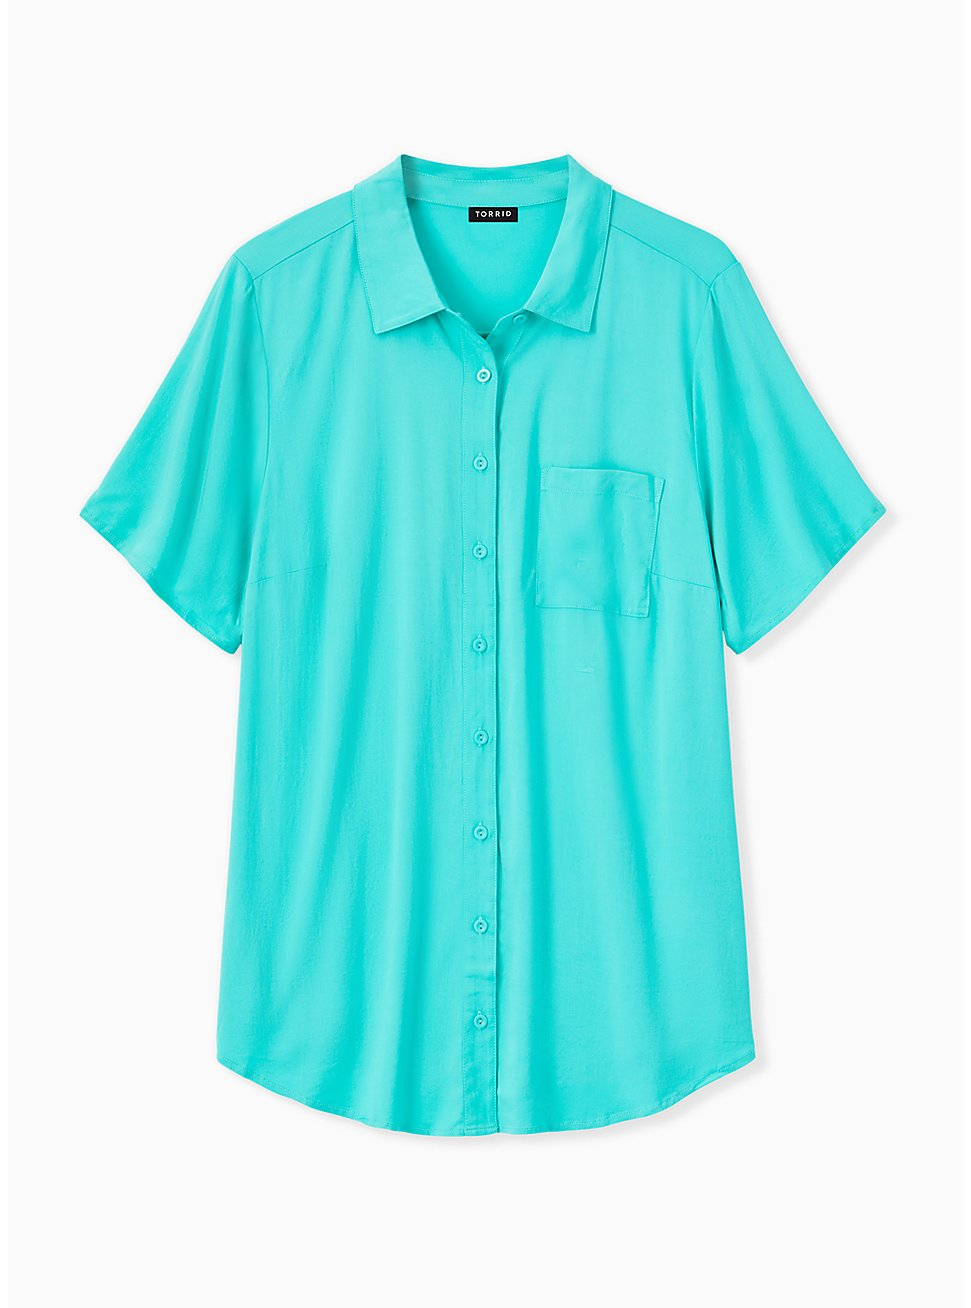 Plus Size Turquoise Challis Button Front Shirt, AQUA GREEN, hi-res